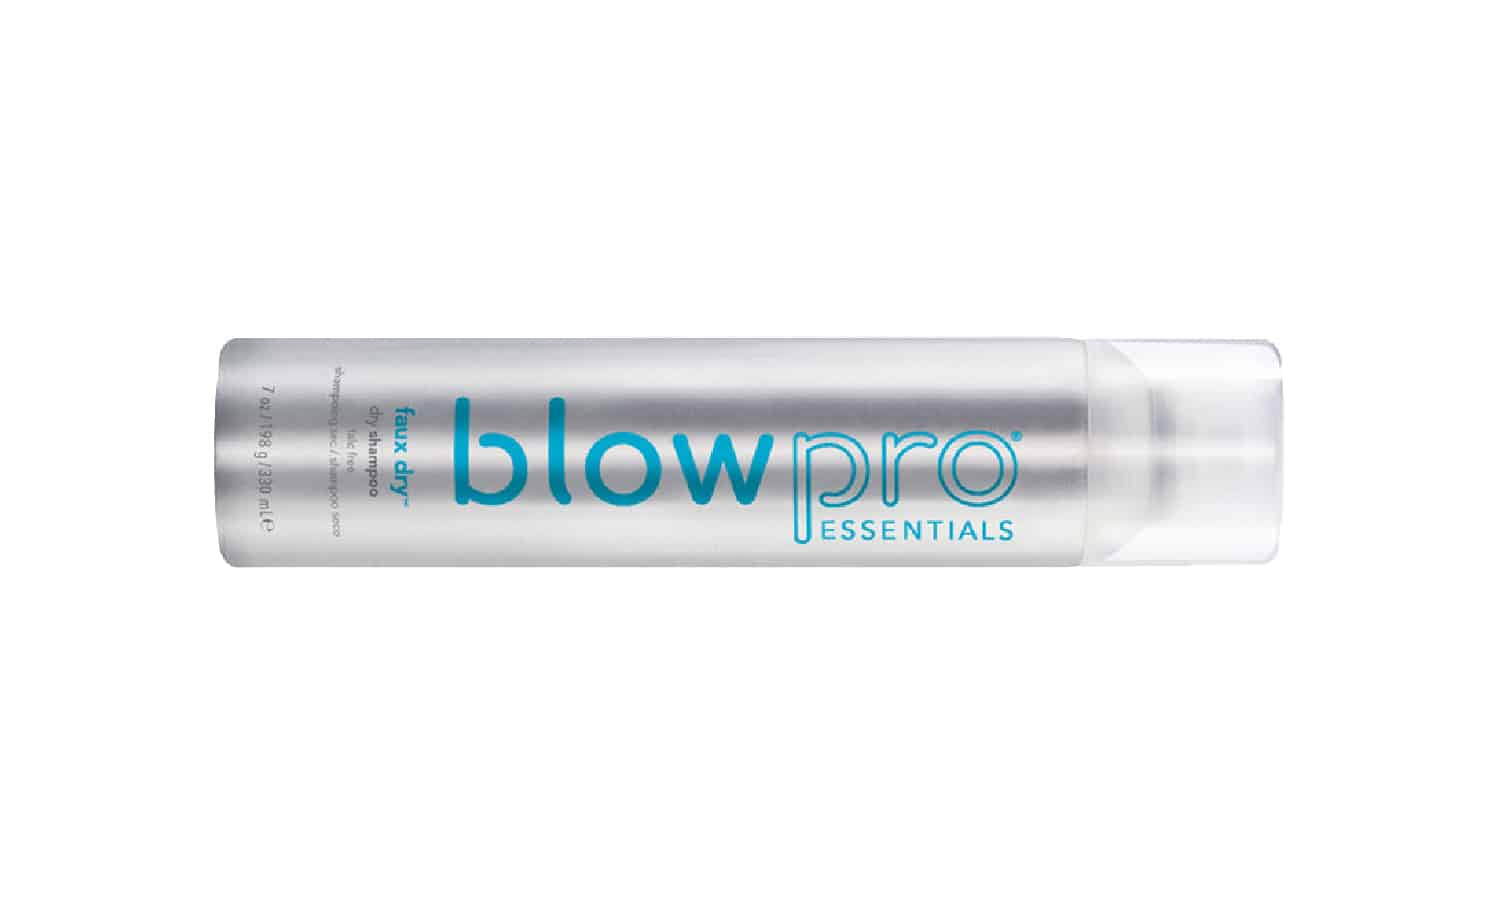 Blowpro Essentials Faux Dry